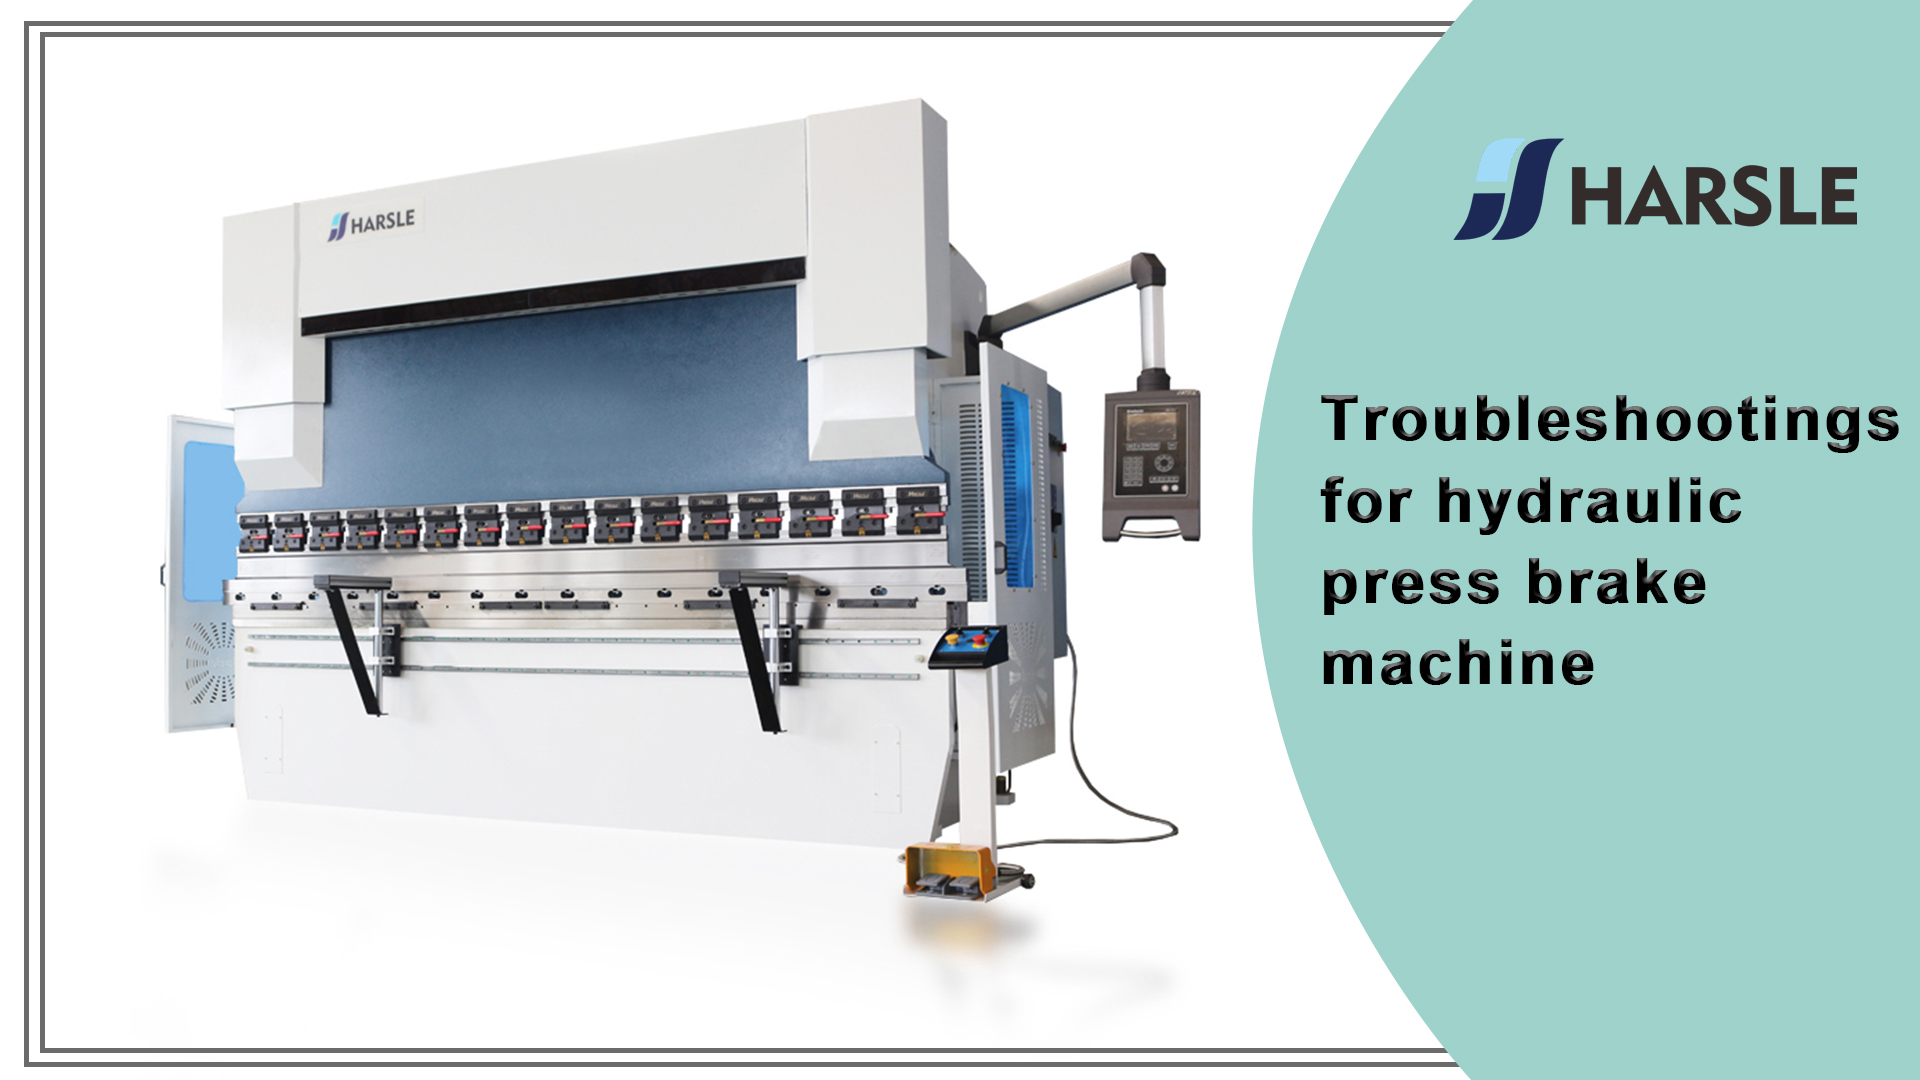 Troubleshootings for hydraulic press brake machine